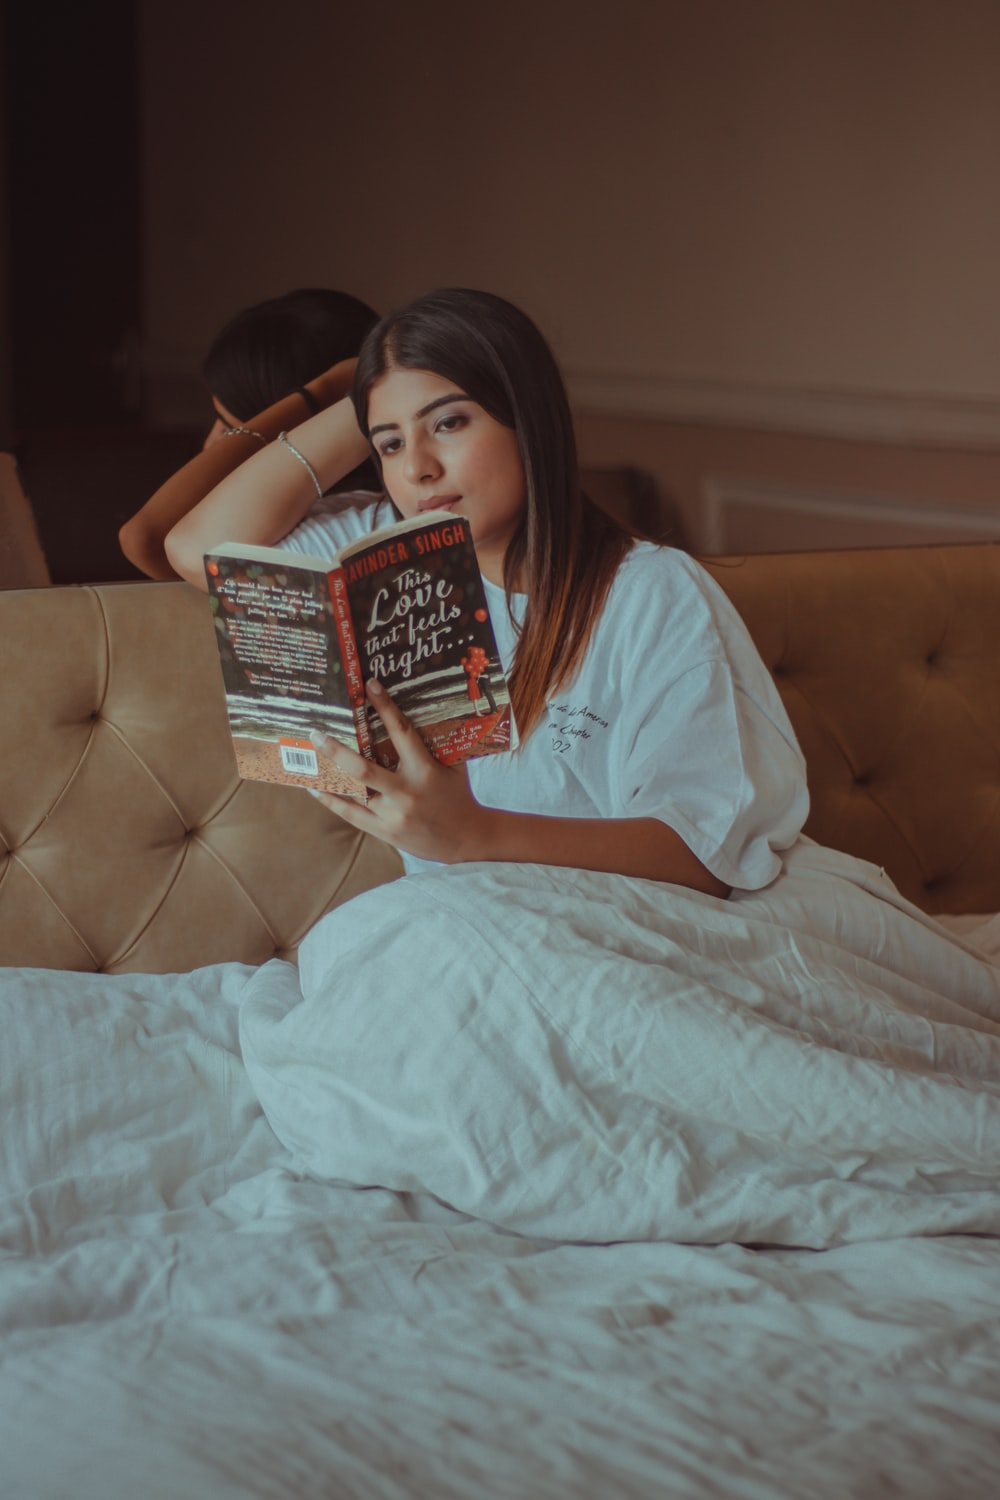 woman in white shirt holding book